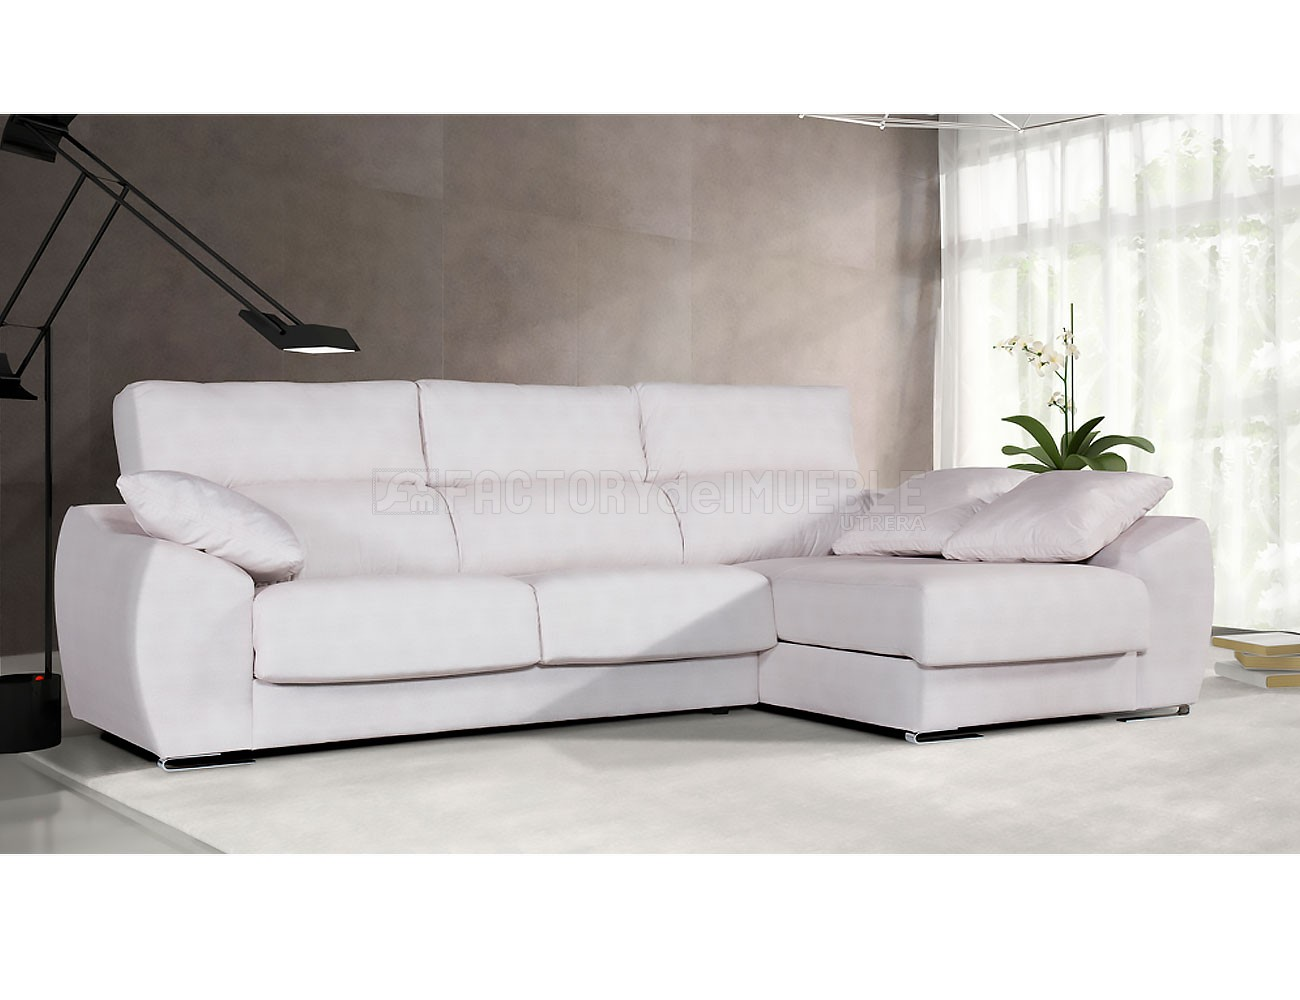 Sofa chaiselongue tosca5